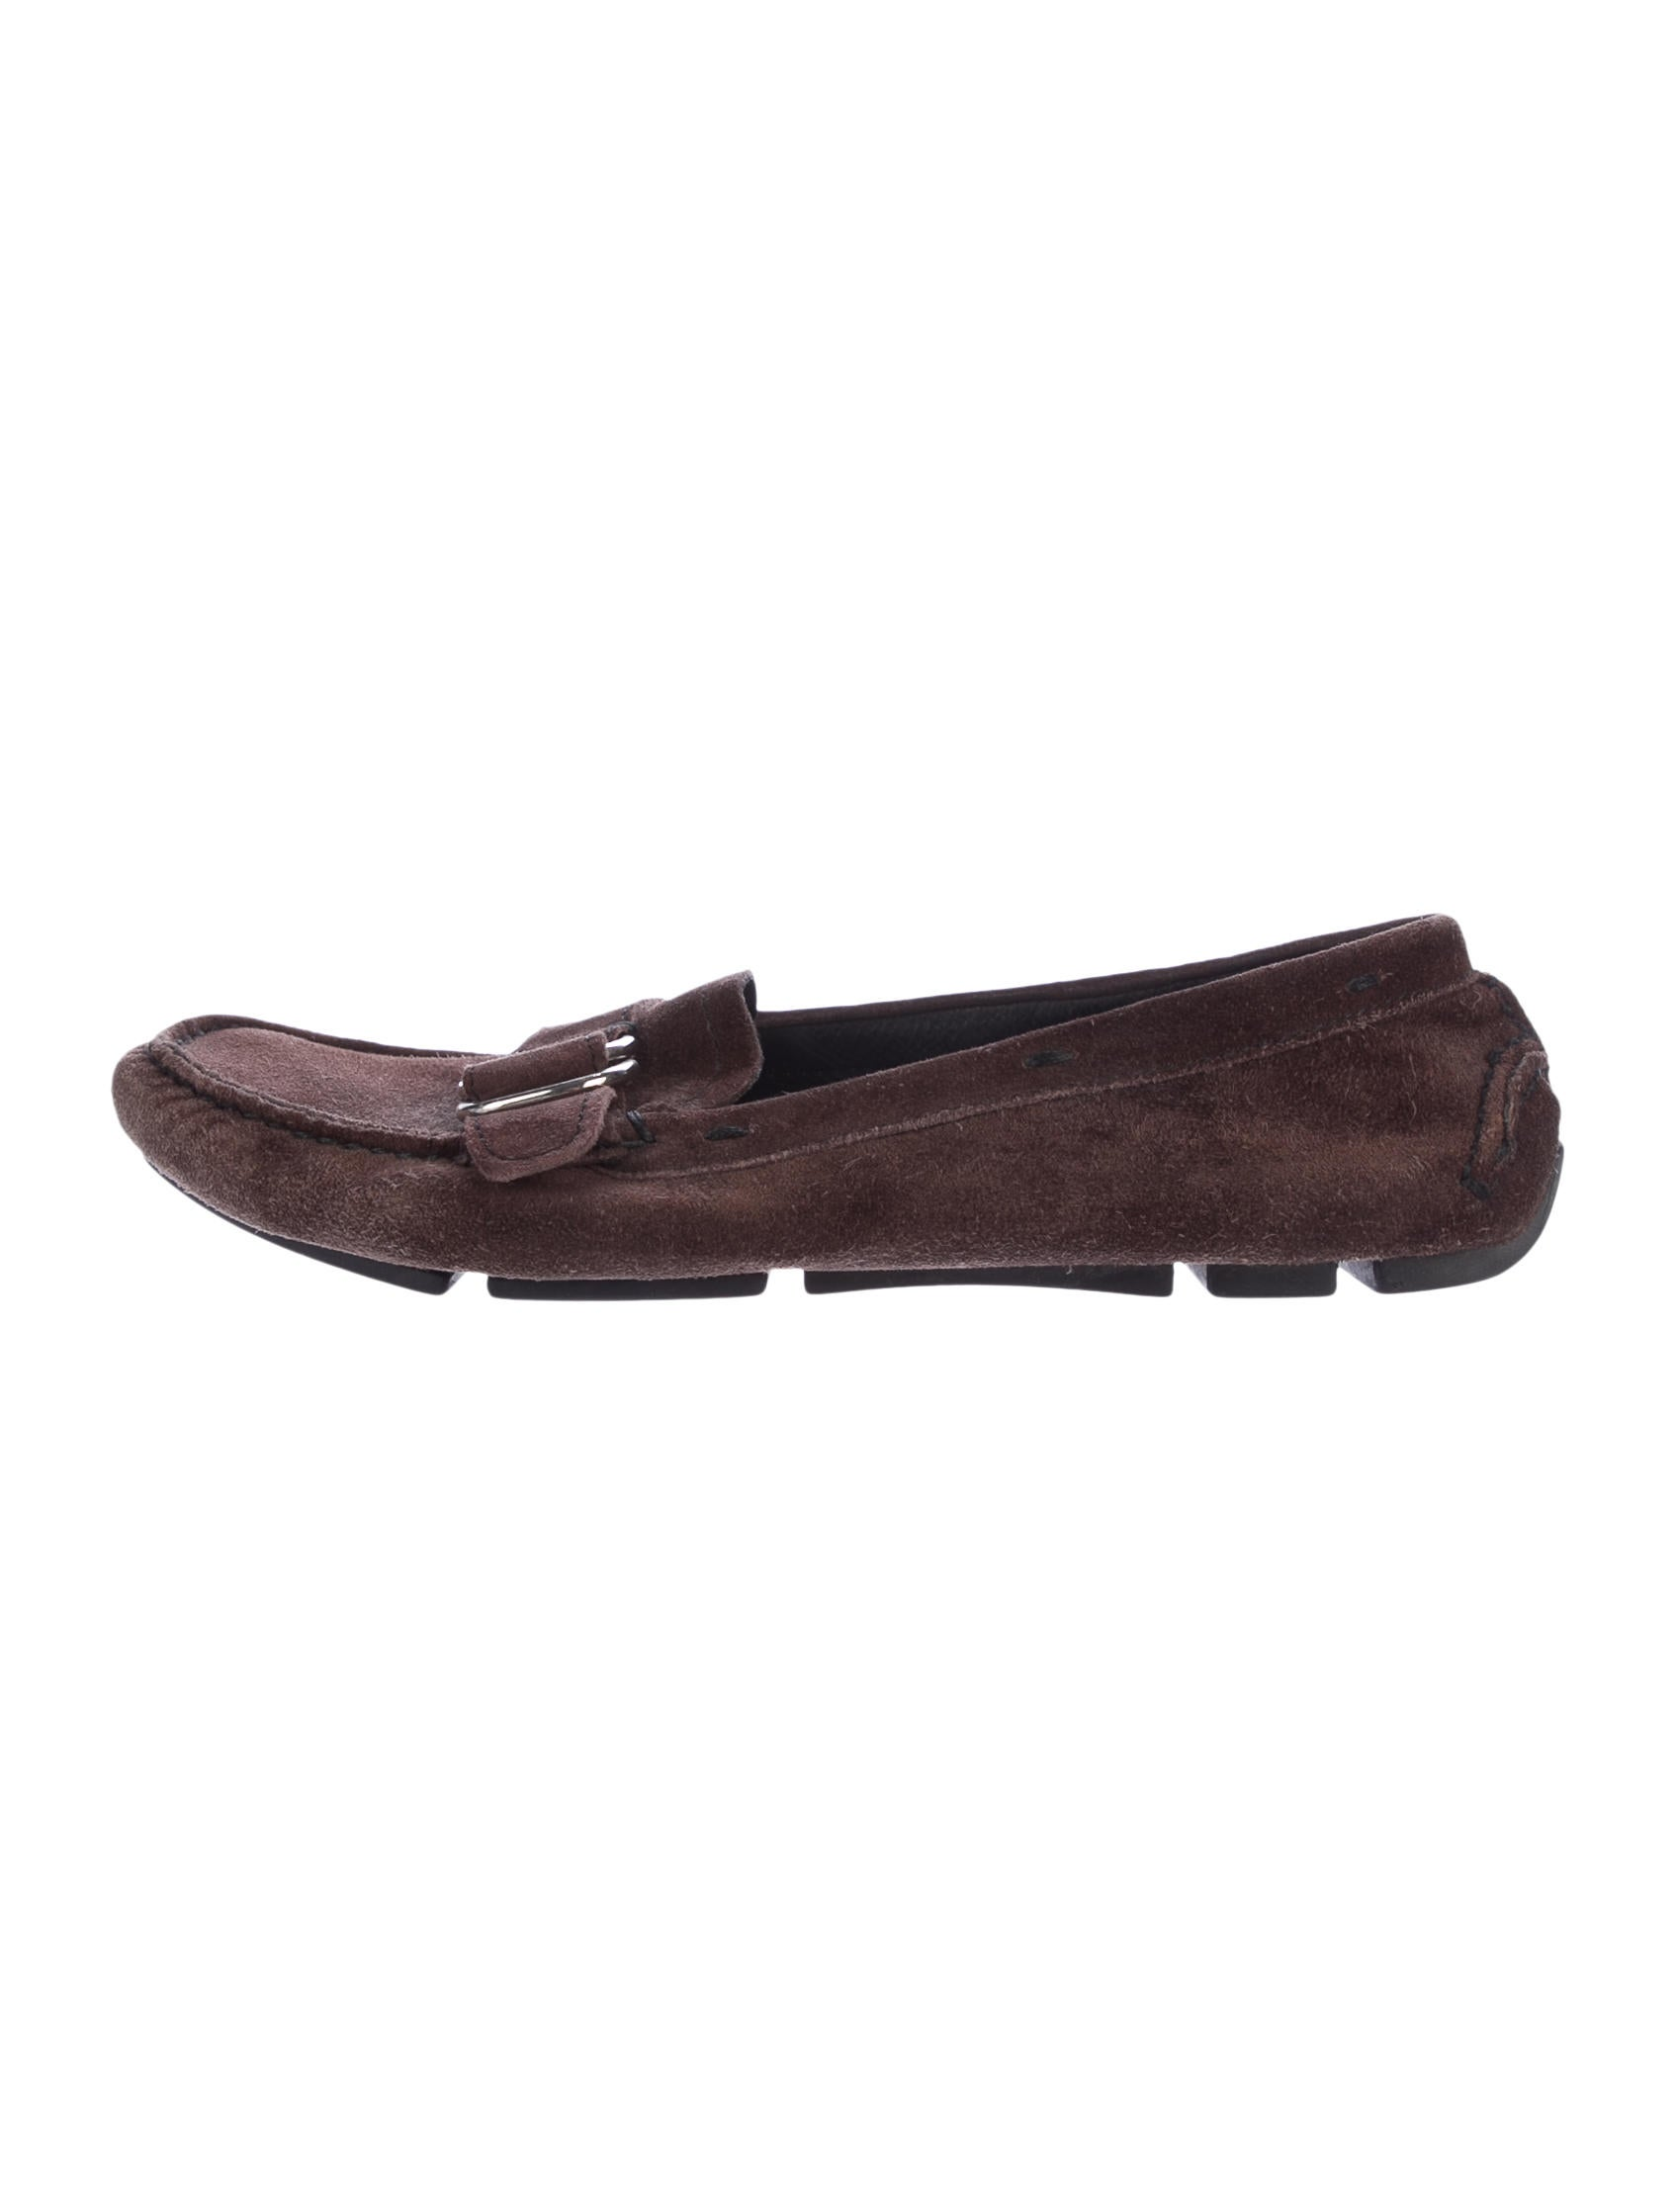 Prada Suede Loafer Flats - Shoes - PRA159704 | The RealReal